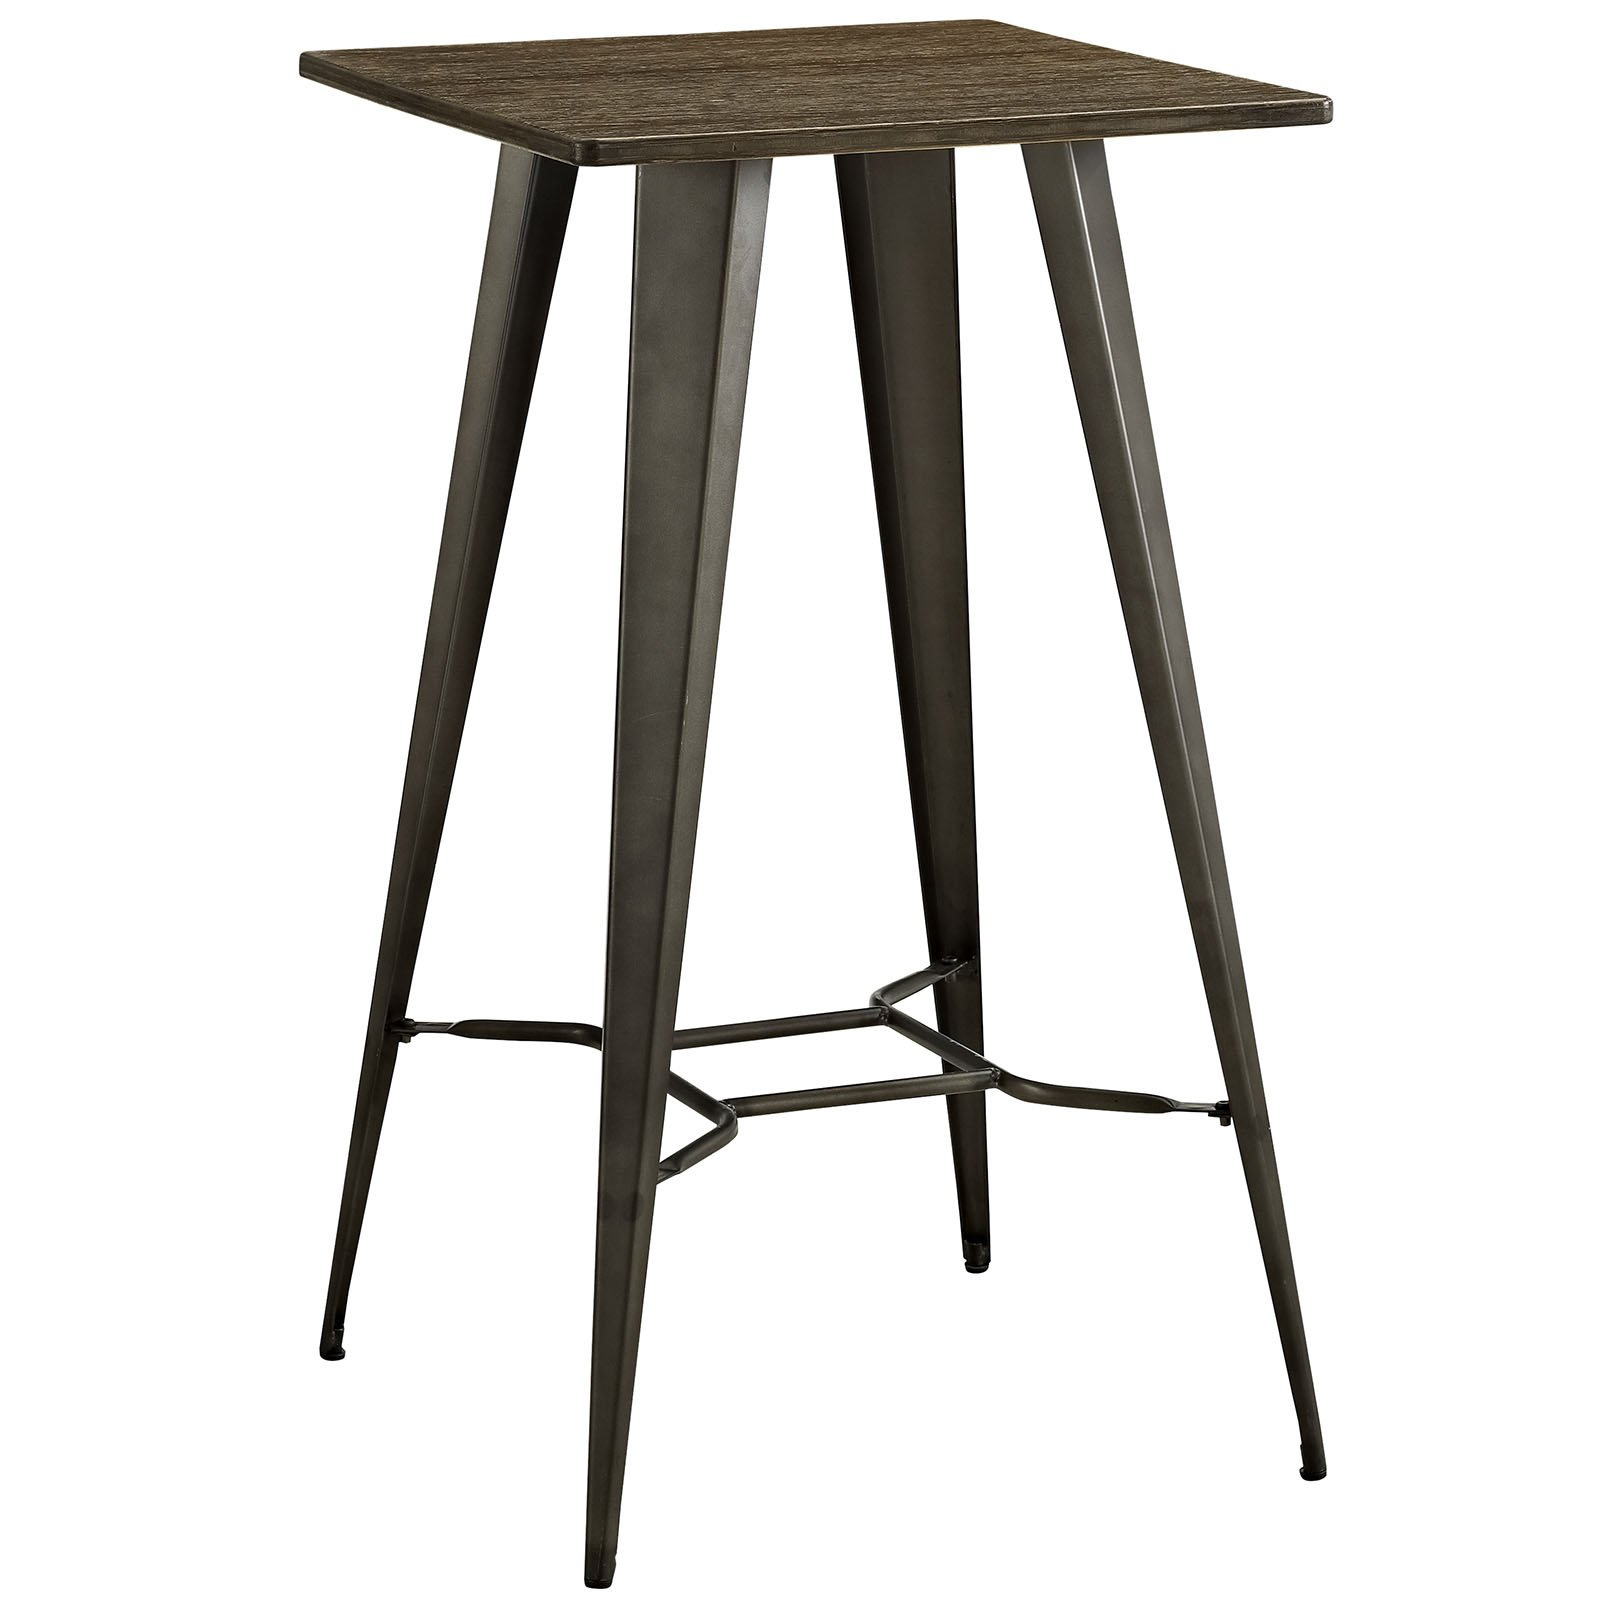 Modway Direct Rustic Modern Farmhouse Steel Metal Square Bar Table with Bamboo Top in Brown by Modway